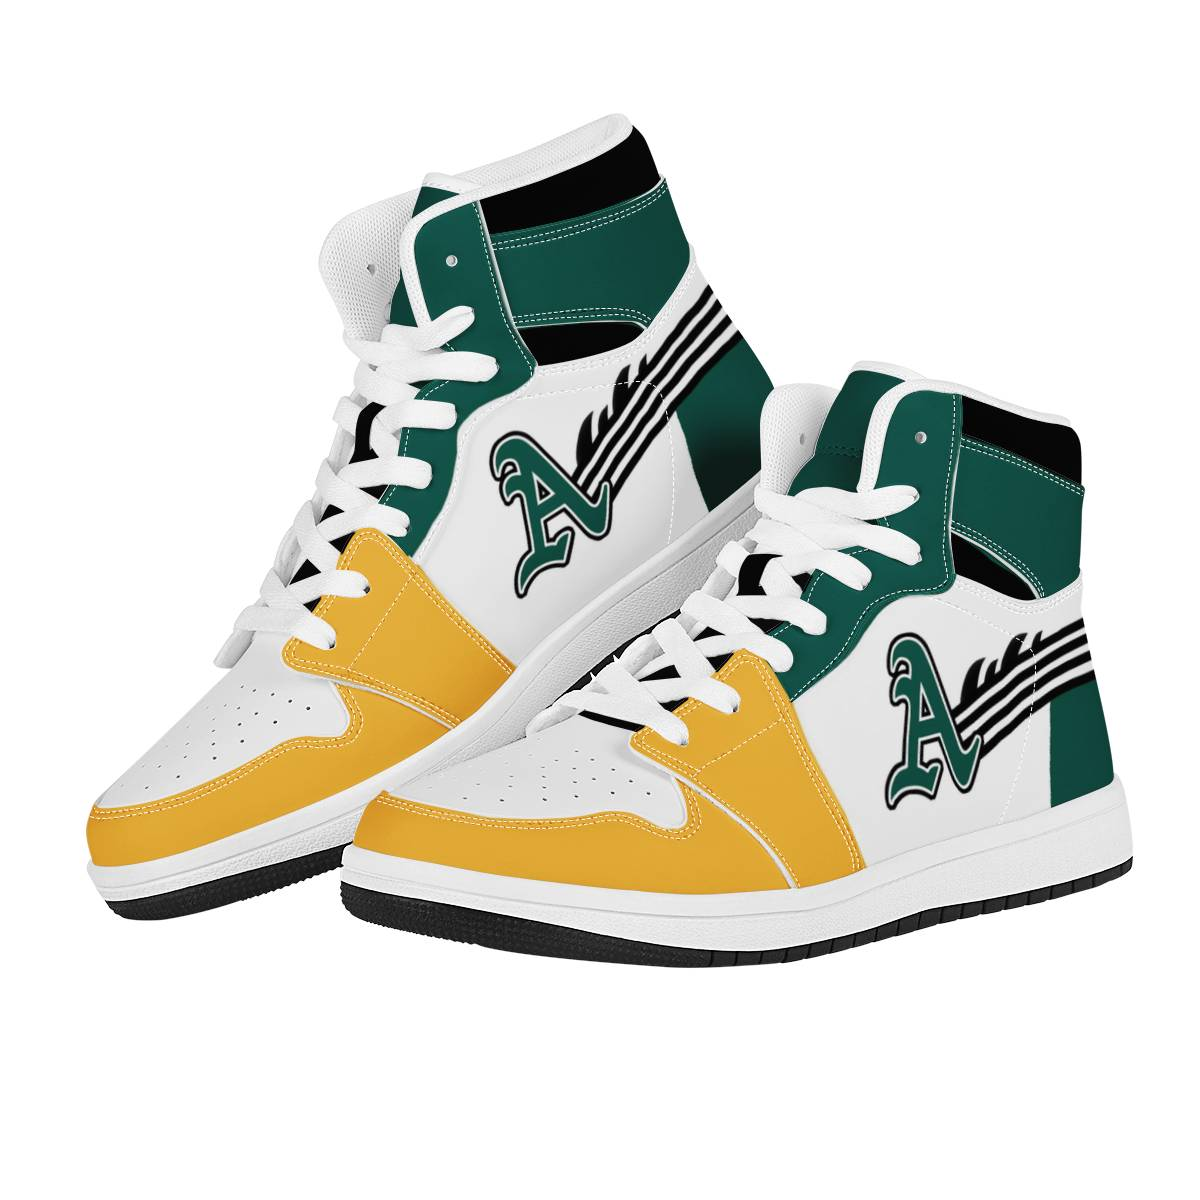 Women's Oakland Athletics High Top Leather AJ1 Sneakers 001